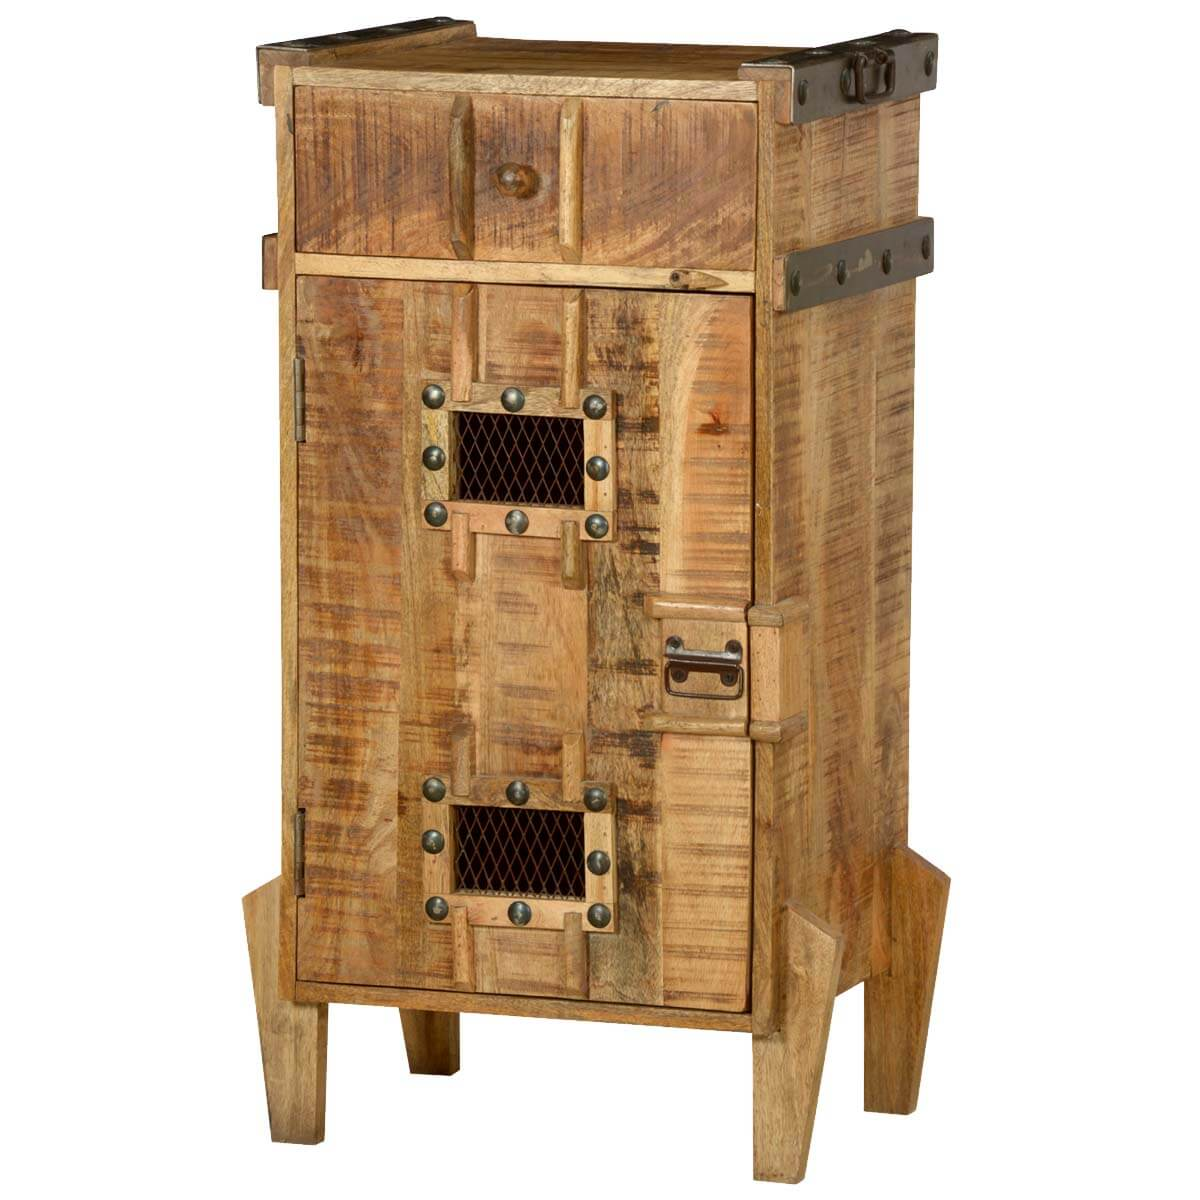 Gothic Tower Standing Farmhouse Rustic Storage Cabinet